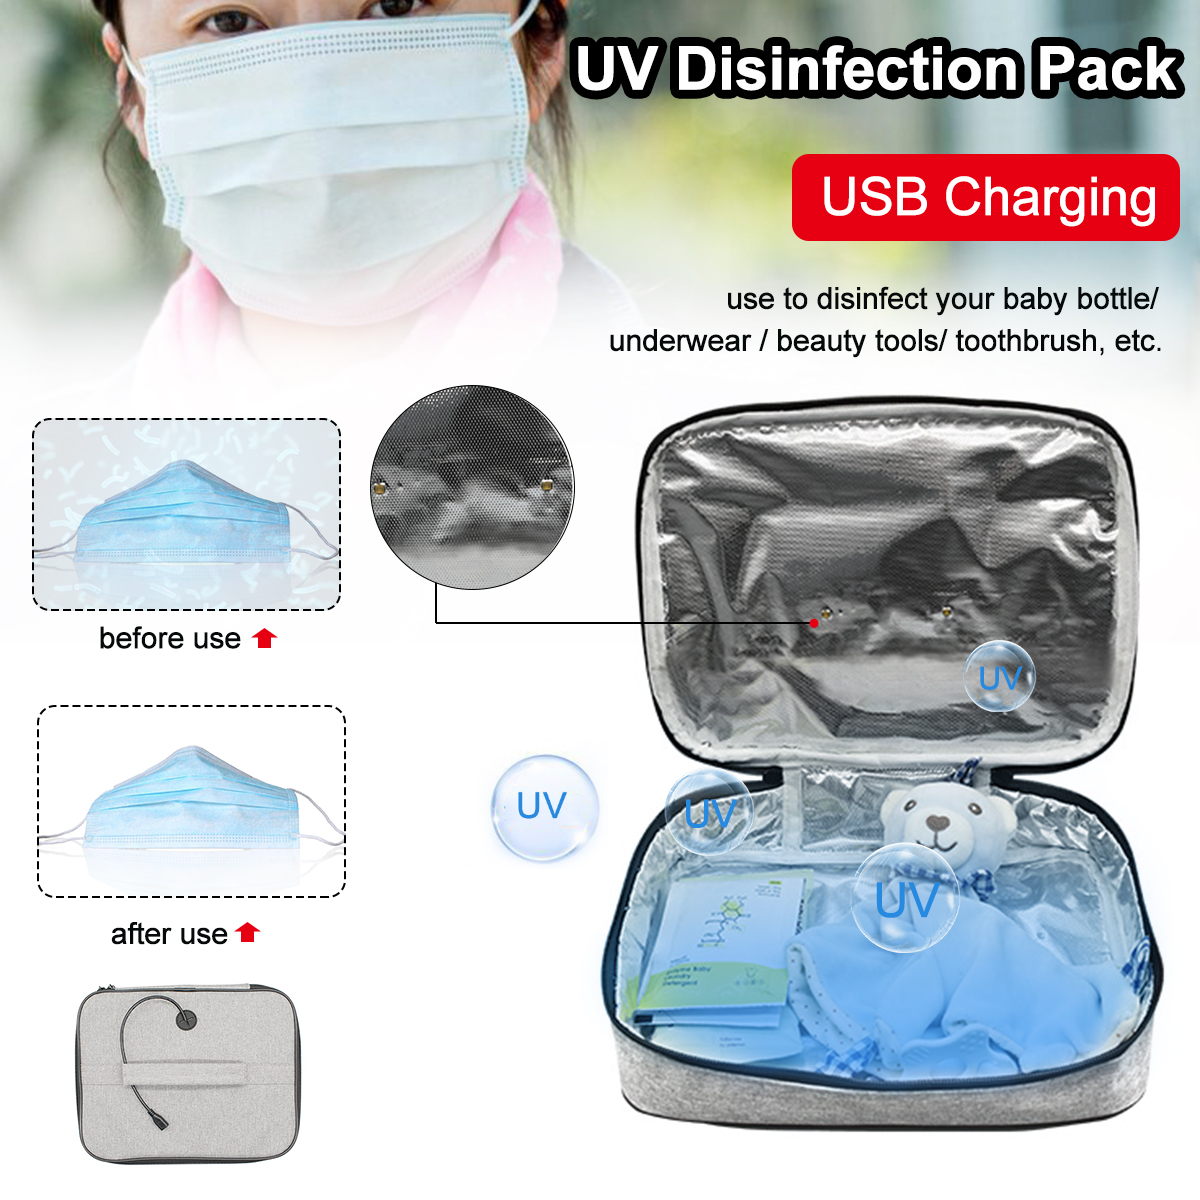 UV Disinfection Pack Baby Milk Bottle Underwear Beauty Tools Mask Toothbrush Supplies Sterilization Box Package